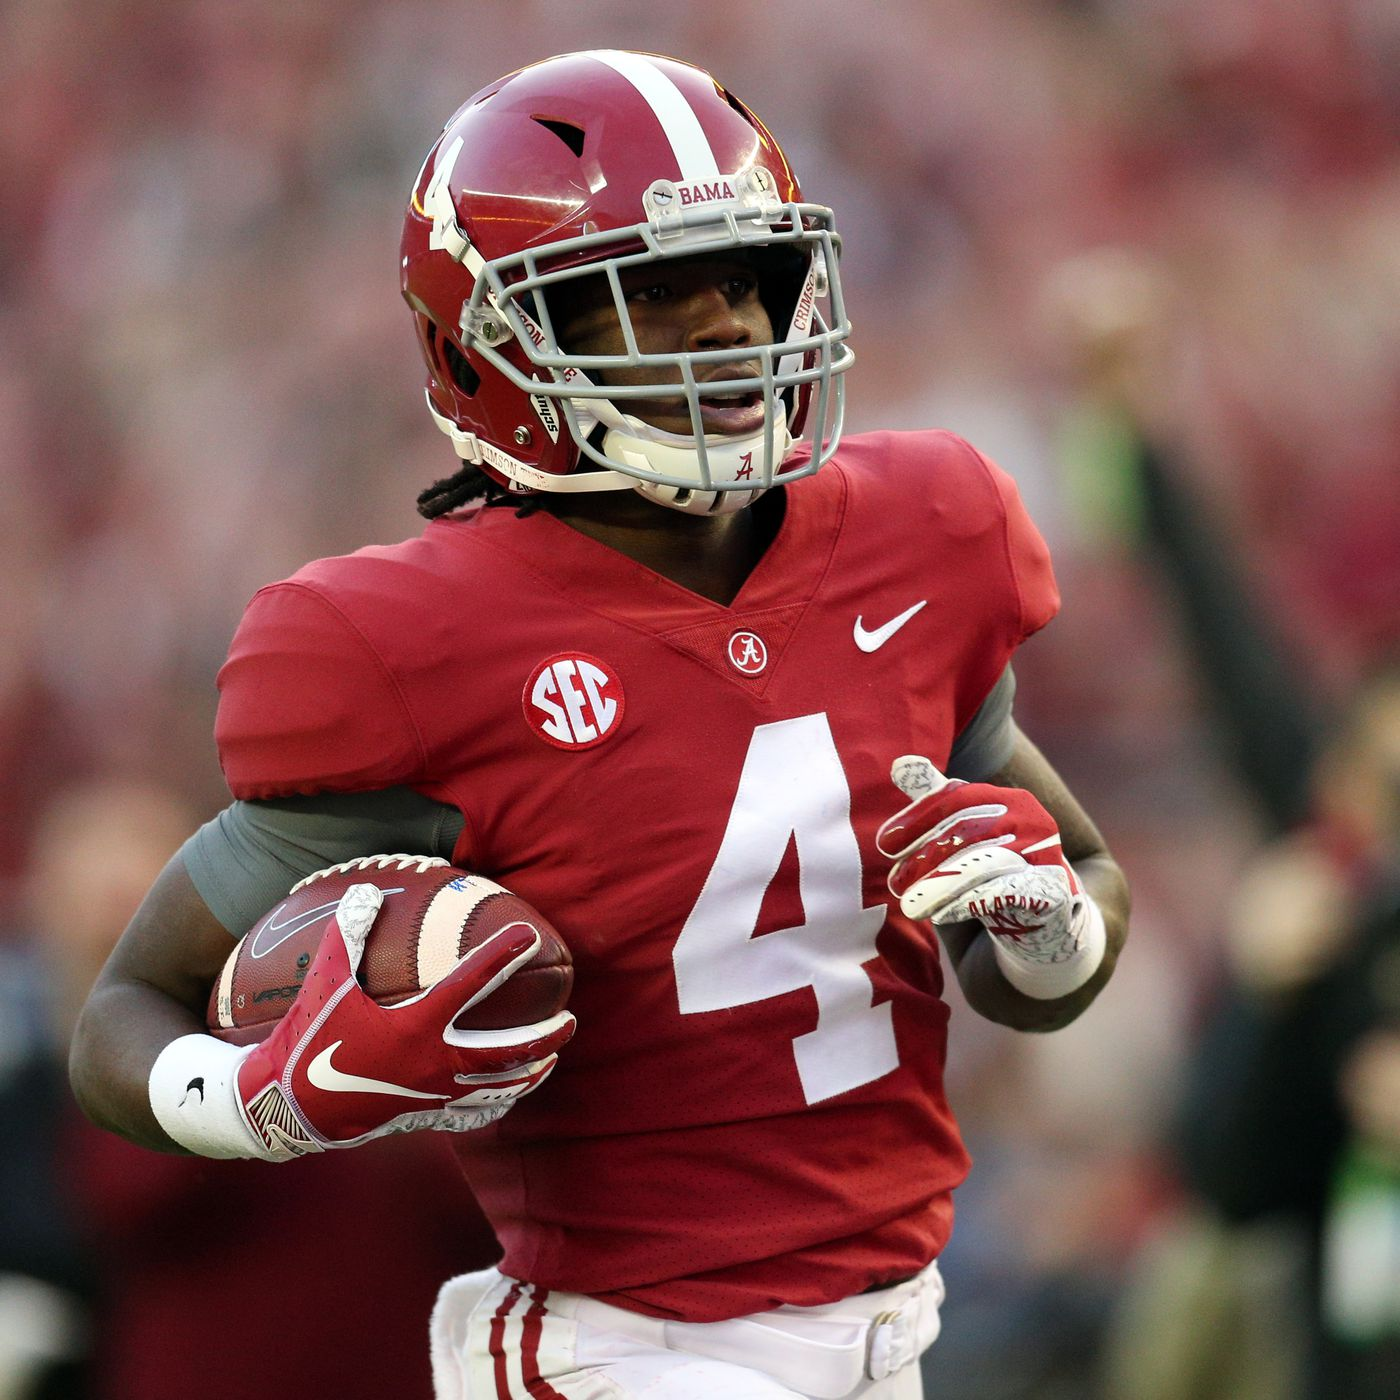 Alabama S Top 10 Draft Prospects For 2020 No 3 Jerry Jeudy Roll Bama Roll